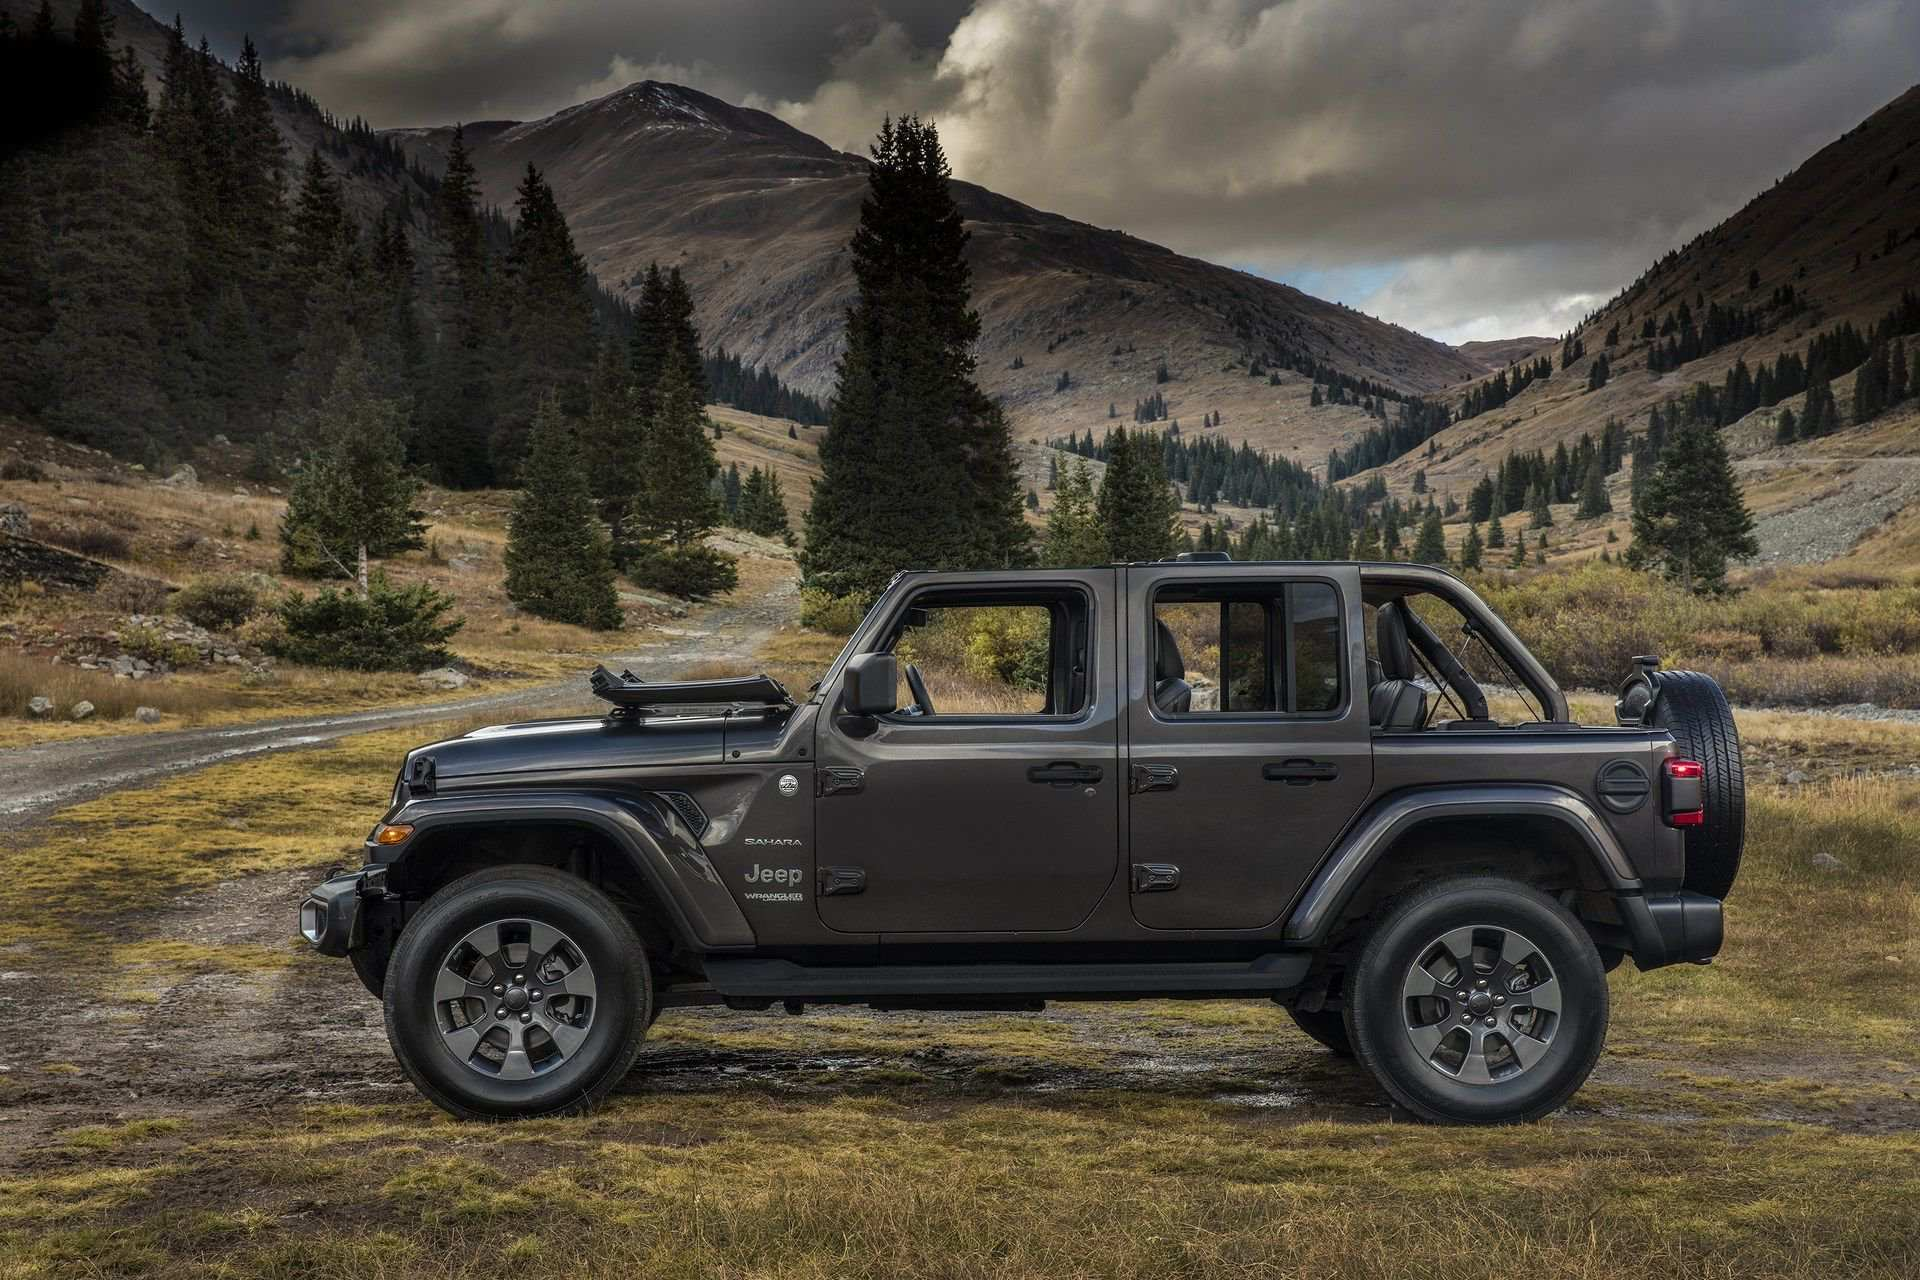 64 Gallery of Jeep Hybrid 2020 Ratings with Jeep Hybrid 2020